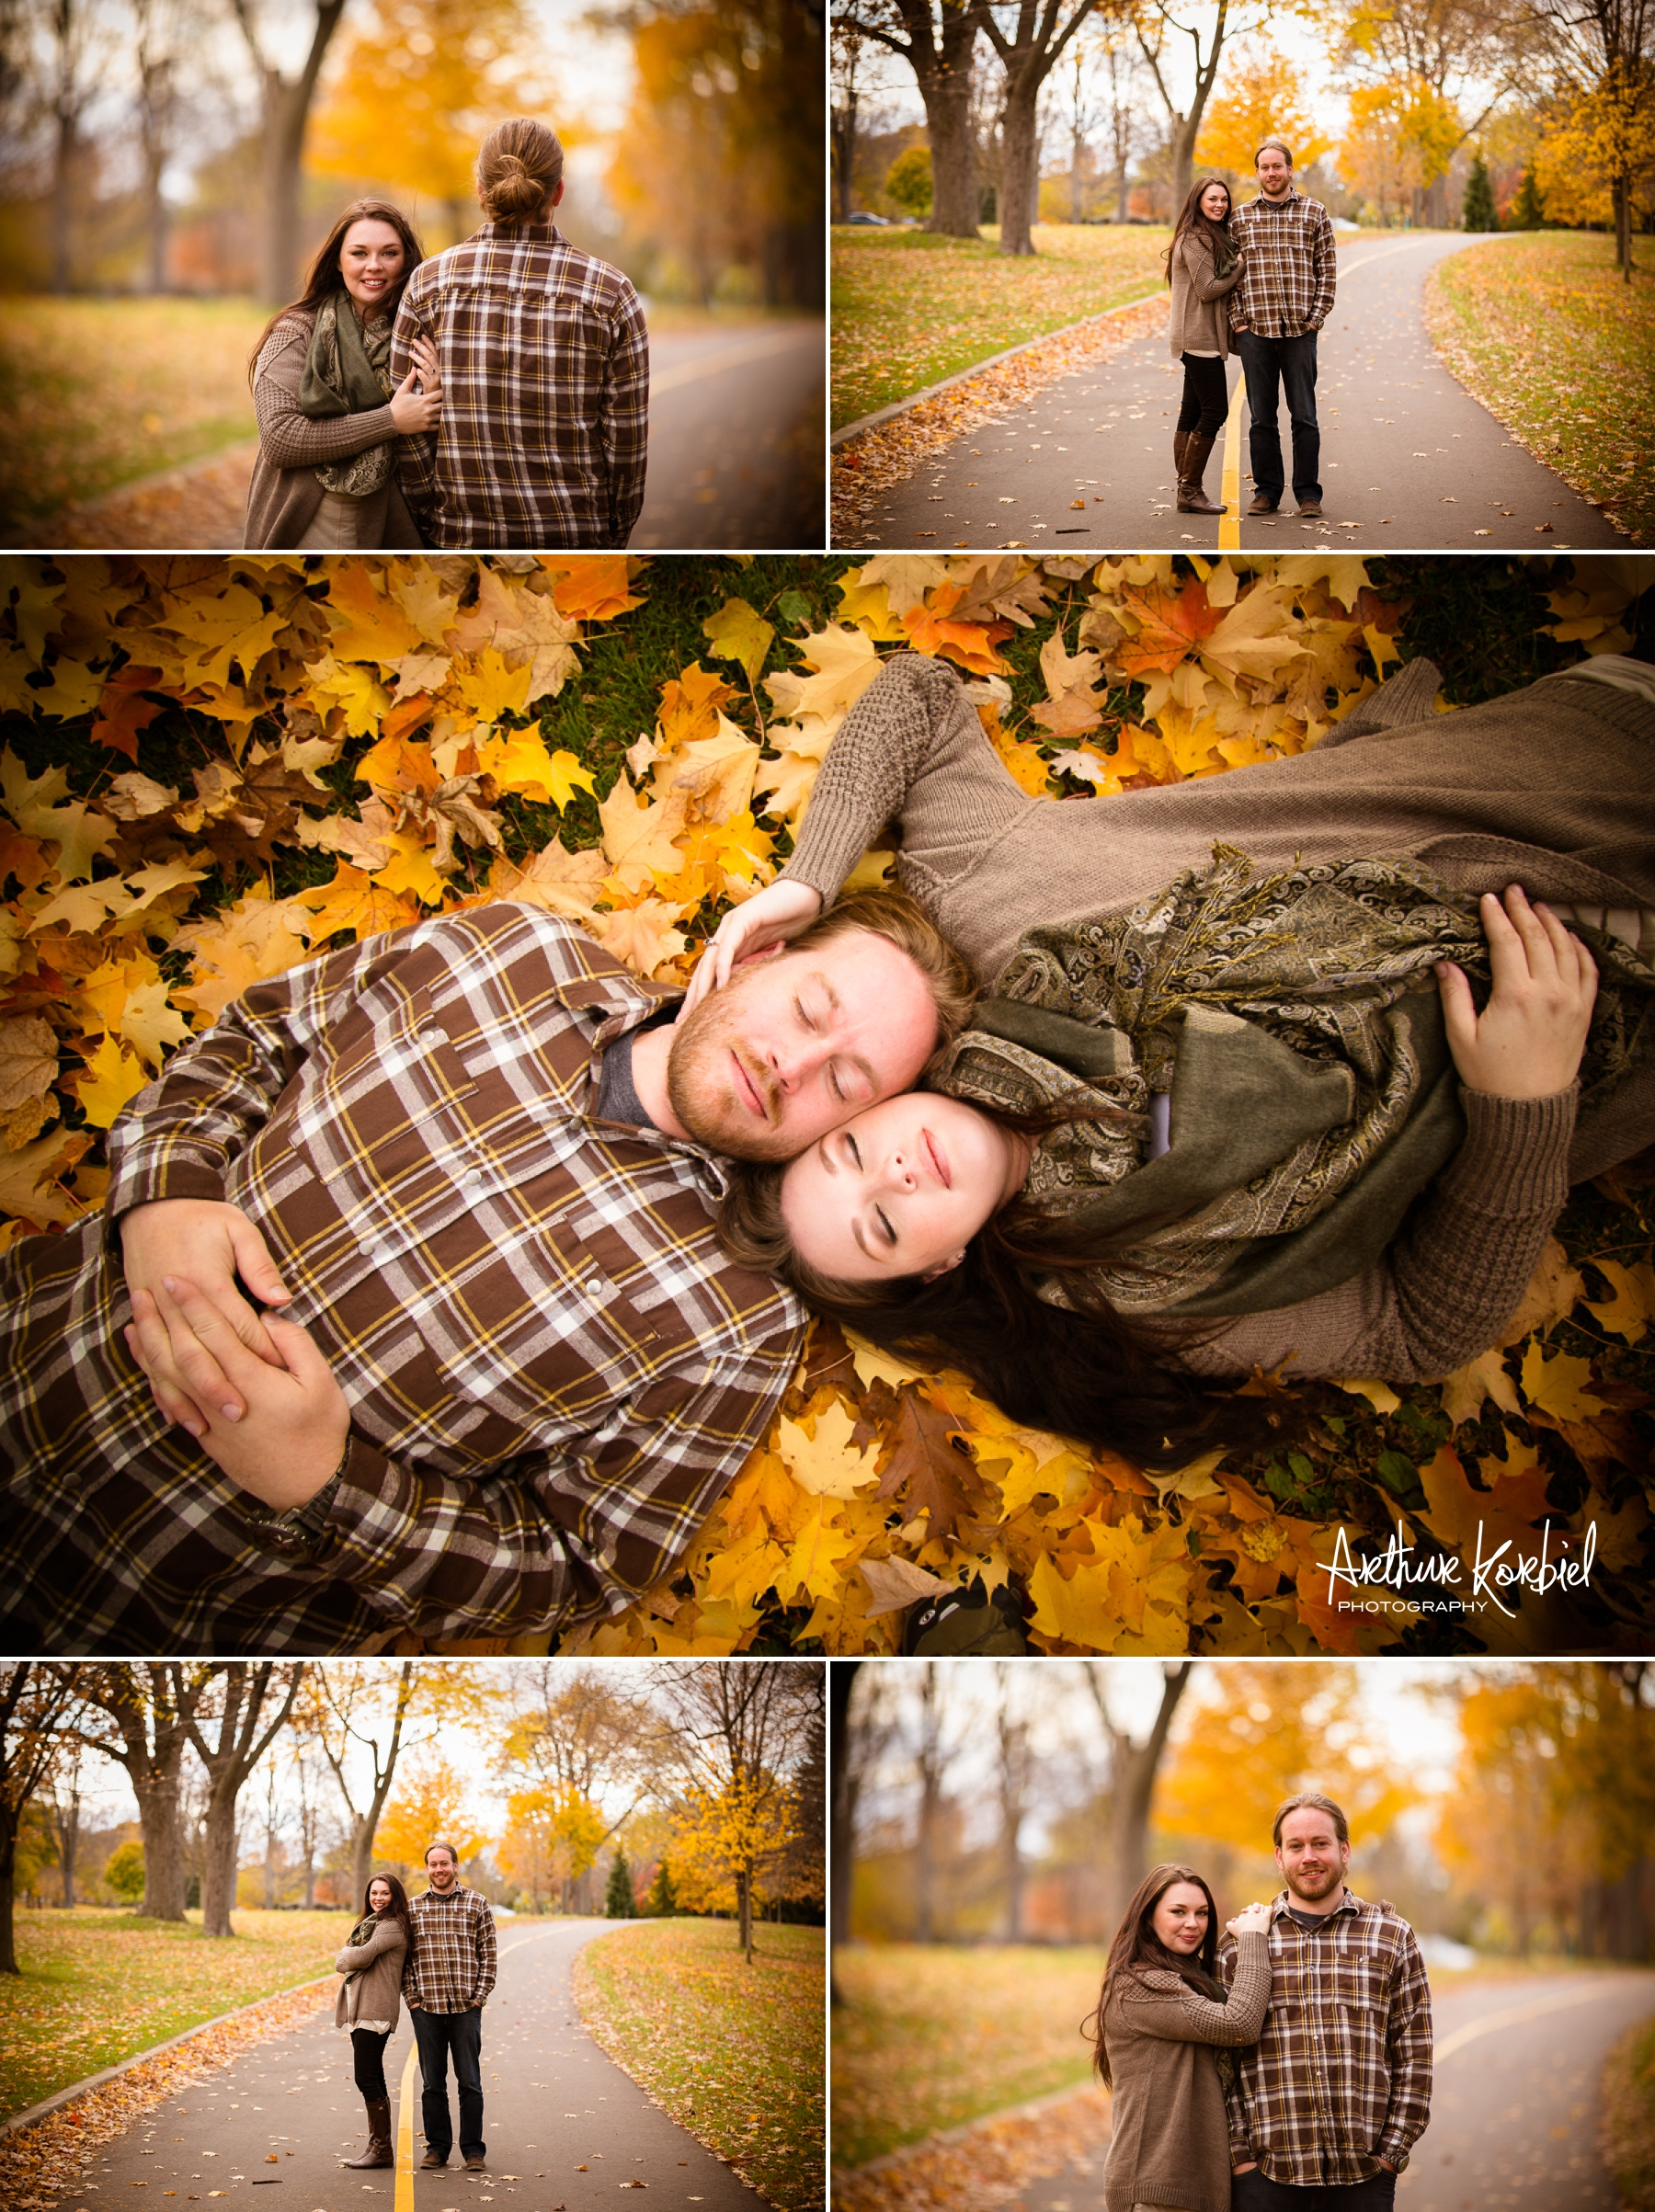 Arthur Korbiel Photography - London Engagement Photographer - Heather & Addison_001.jpg